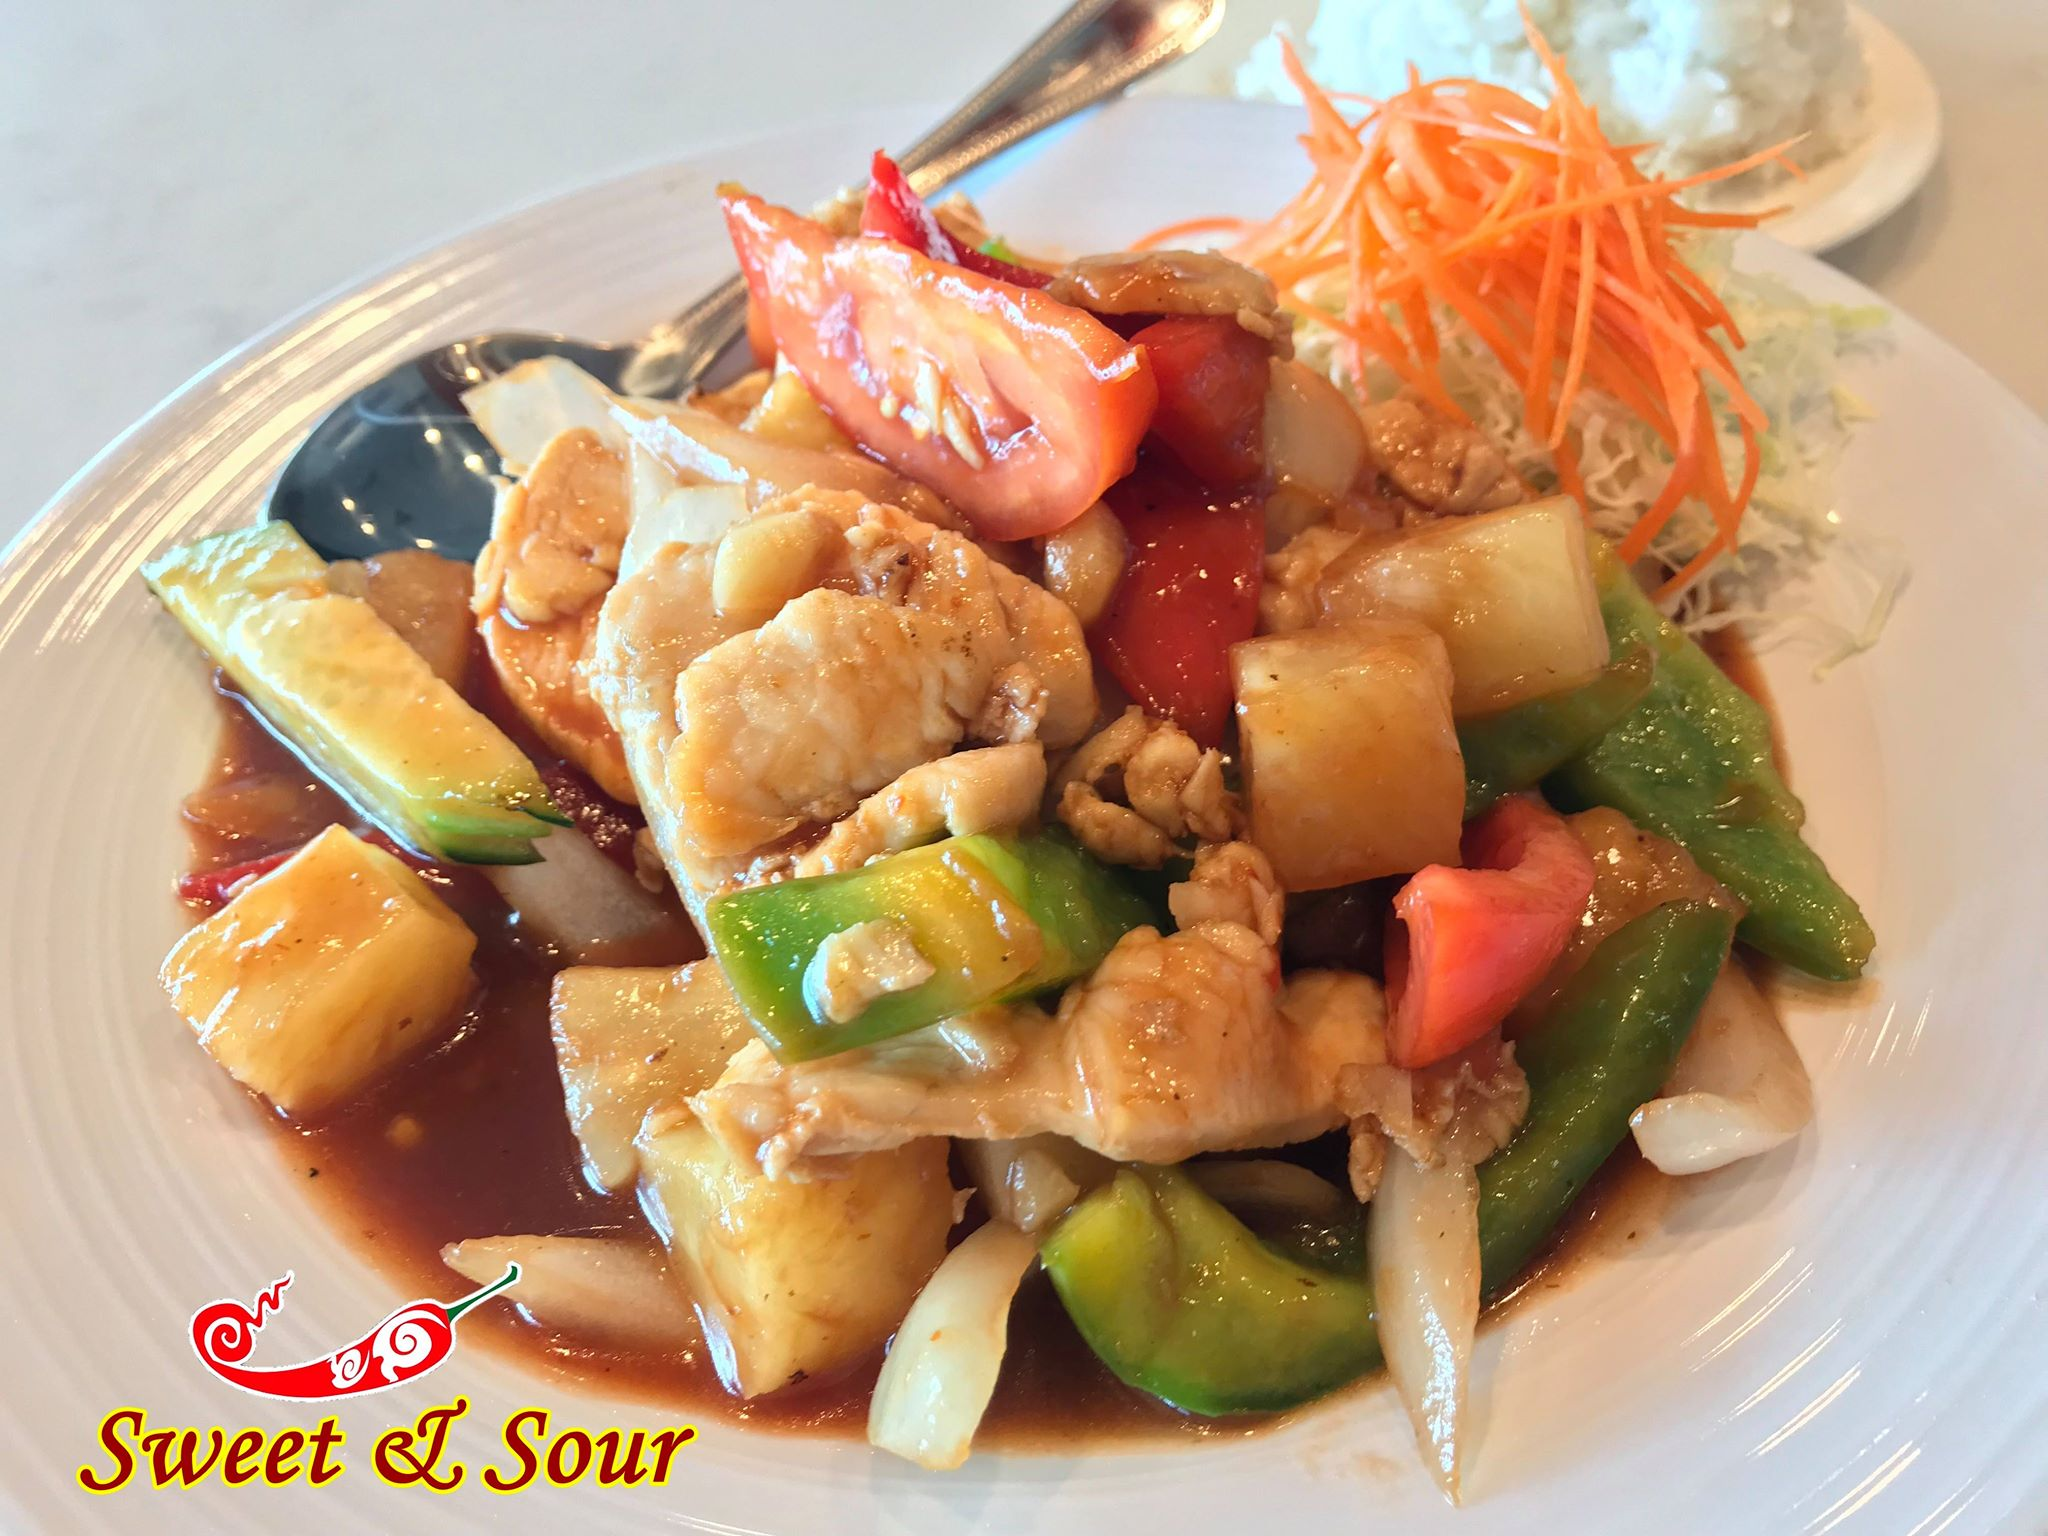 Sweet&Sour Stir-Fry (Catering) Image